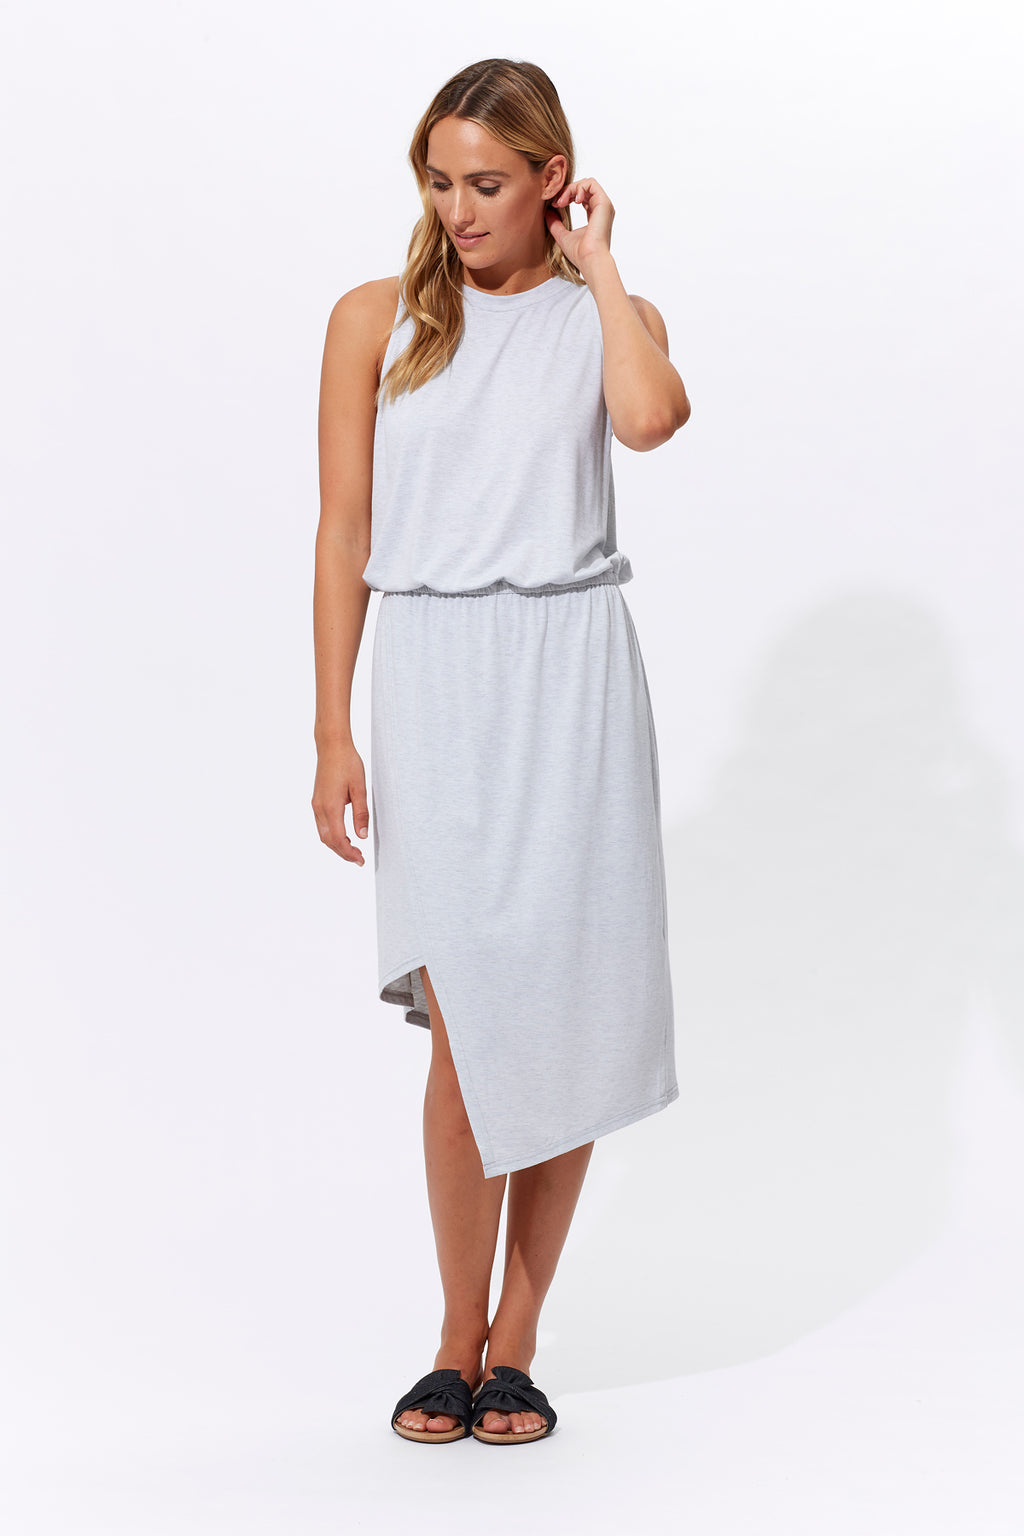 Inez Dress - Marle - Isle of Mine Clothing - Dress Mid